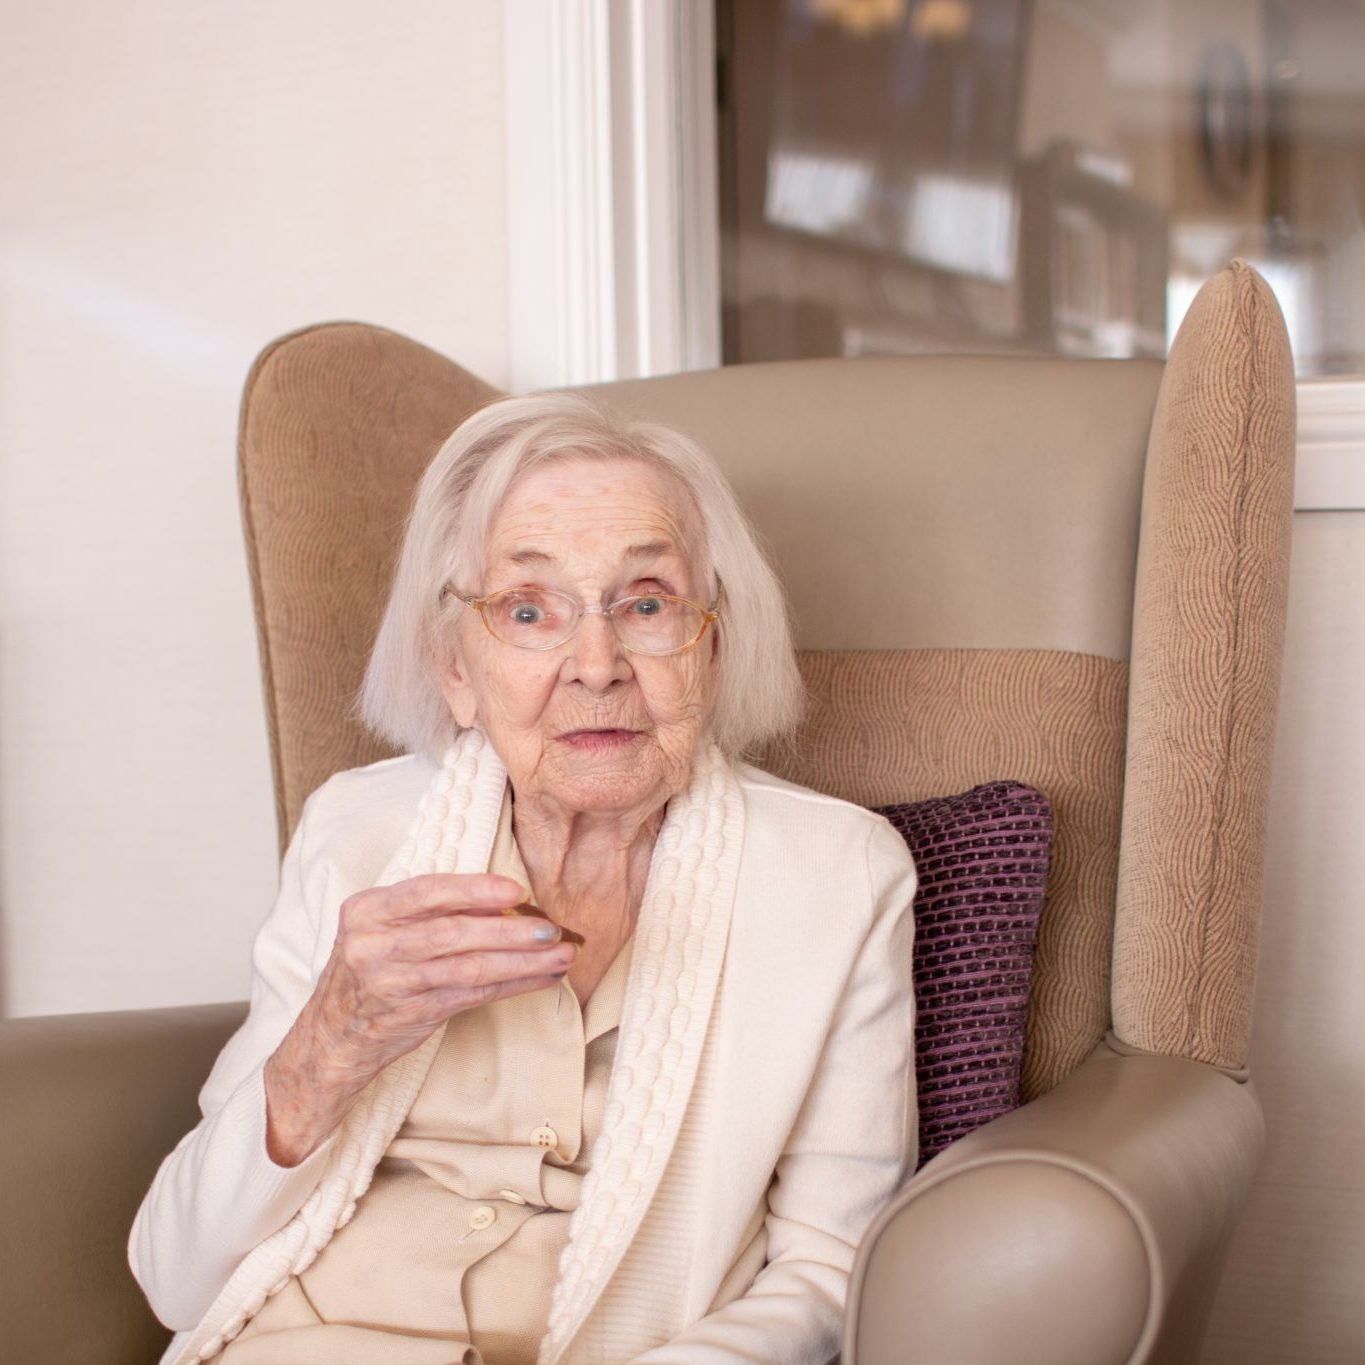 craig healthcare residents lifestyle photography hannah layford resident eating biscuit